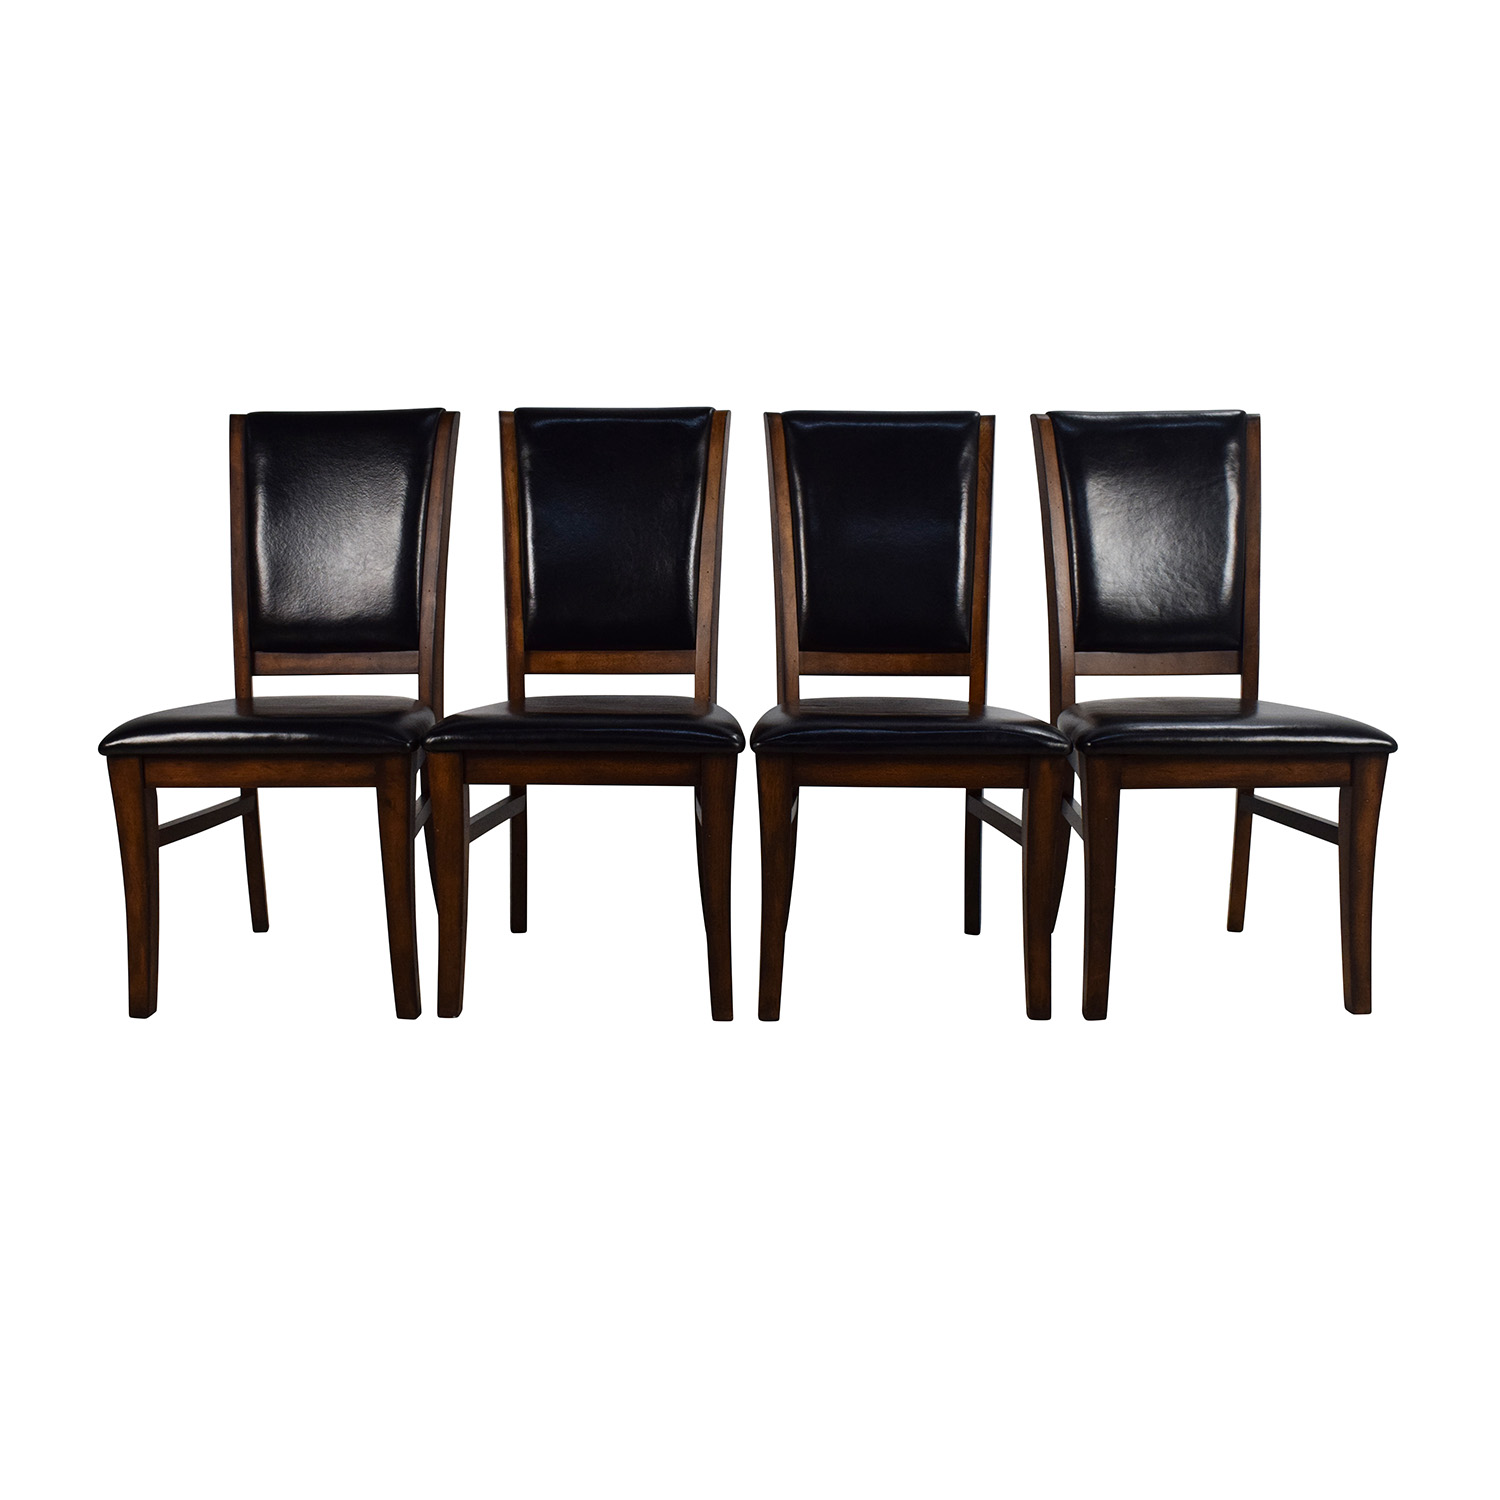 World Market World Market Leather and Wood Dining Chairs dimensions